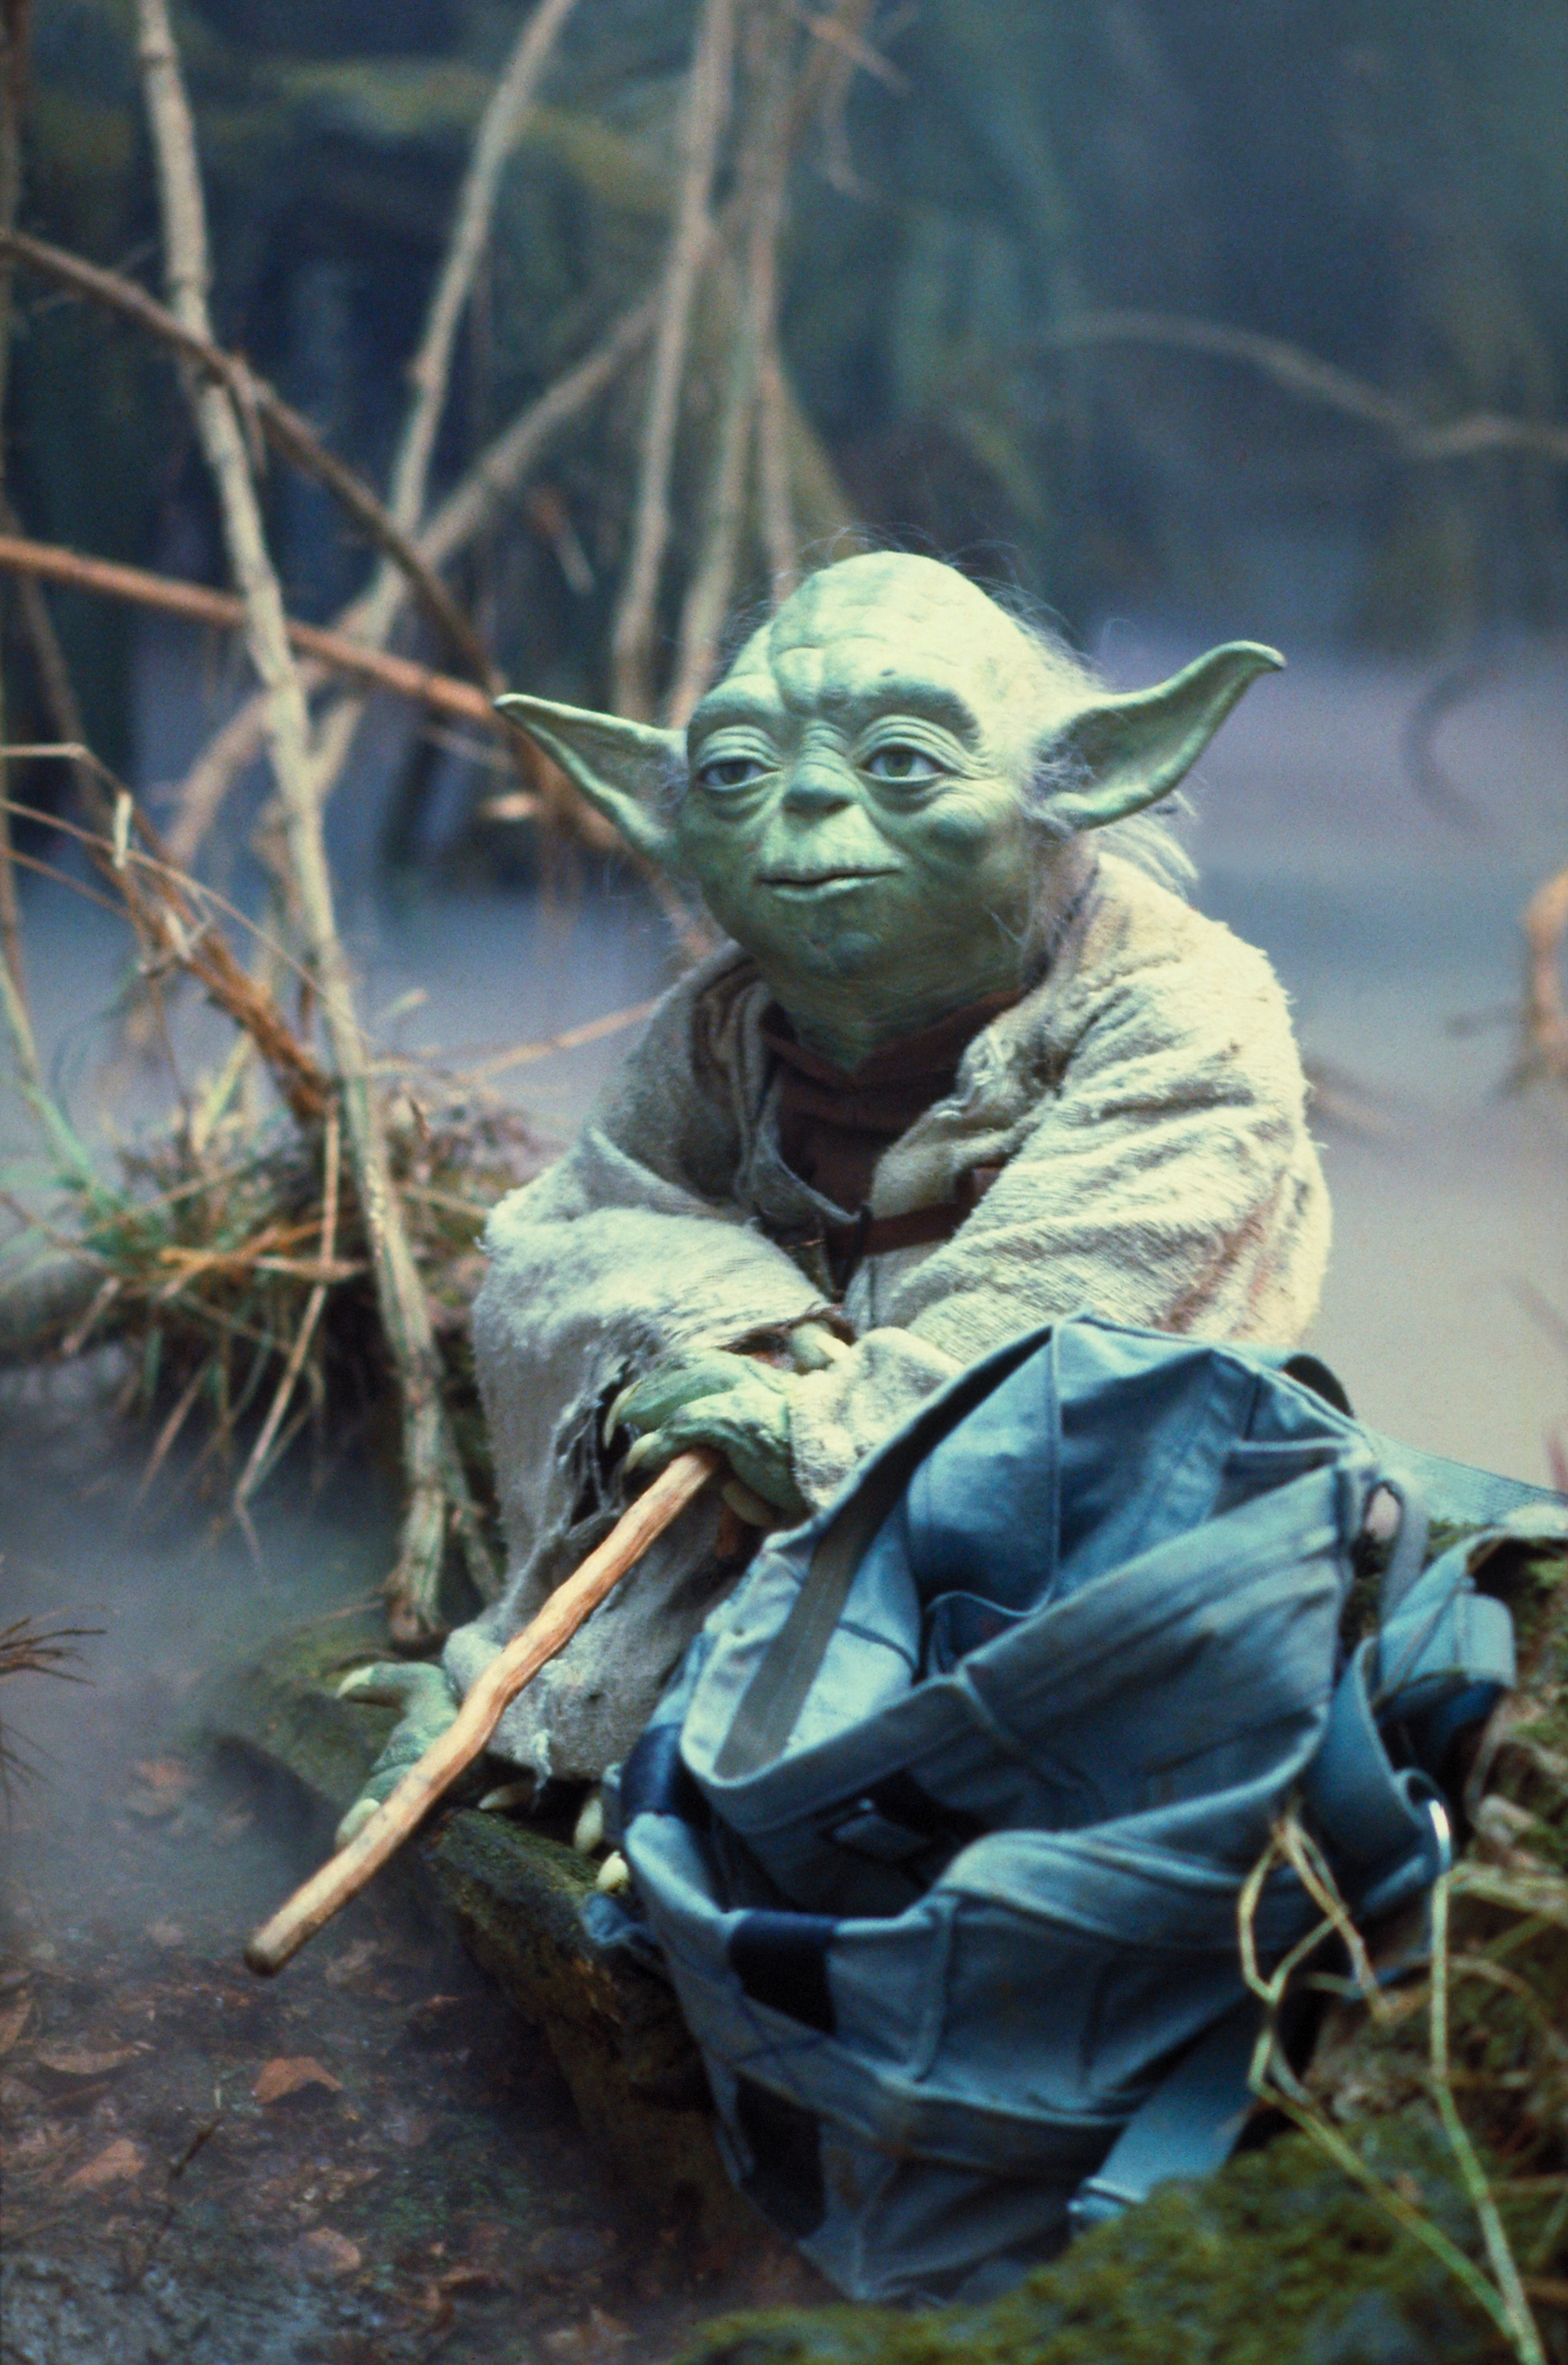 star wars exhibition brings reality to fantasy all images nsf